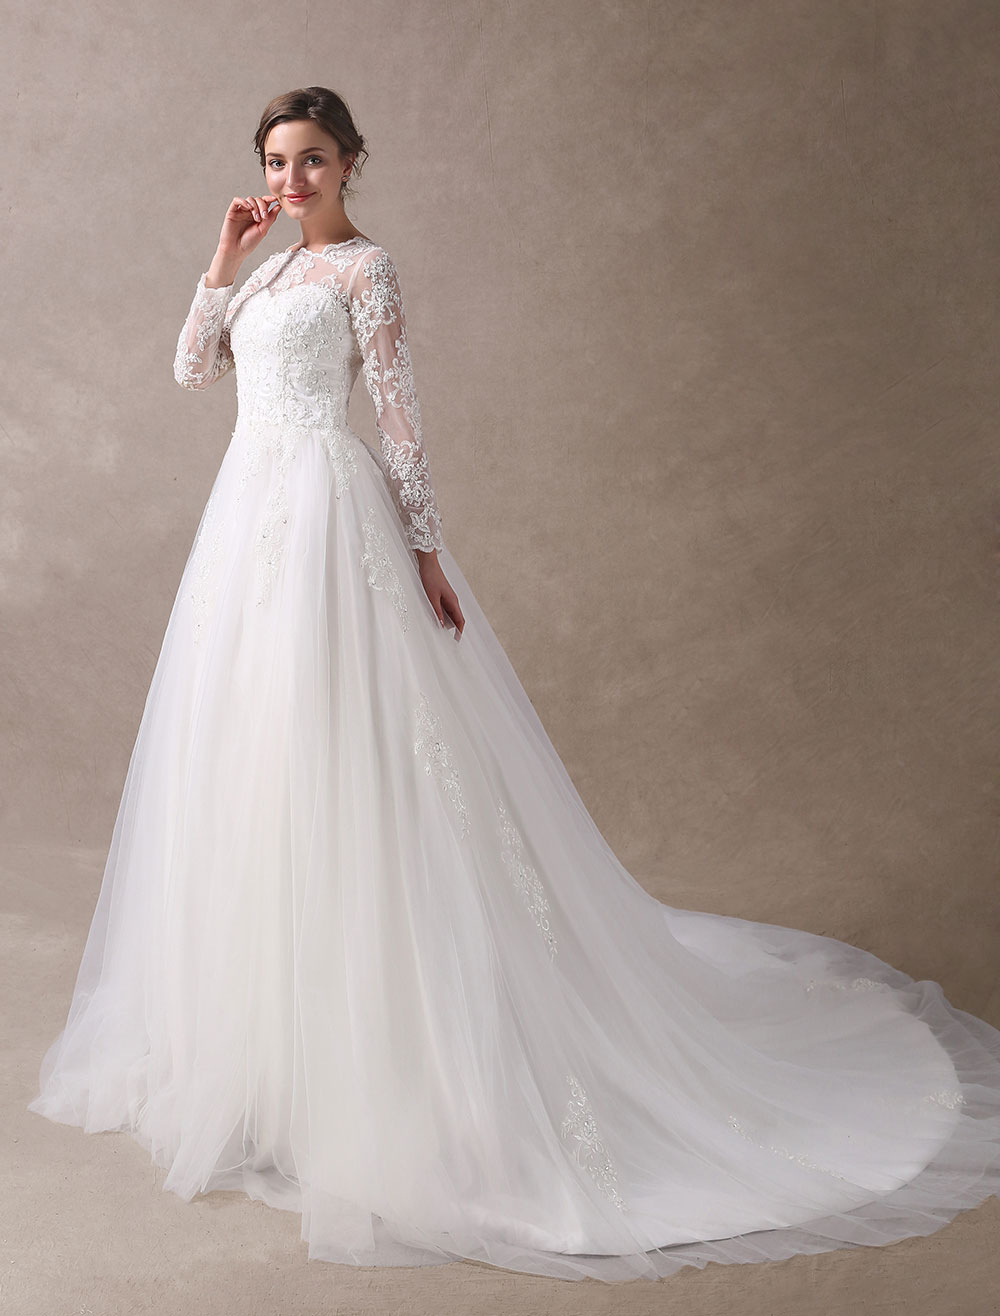 691e577e5 ... Long Sleeve Lace Applique Beading Chapel Train Bridal Dress-. 12.  45%OFF. Color:Ivory